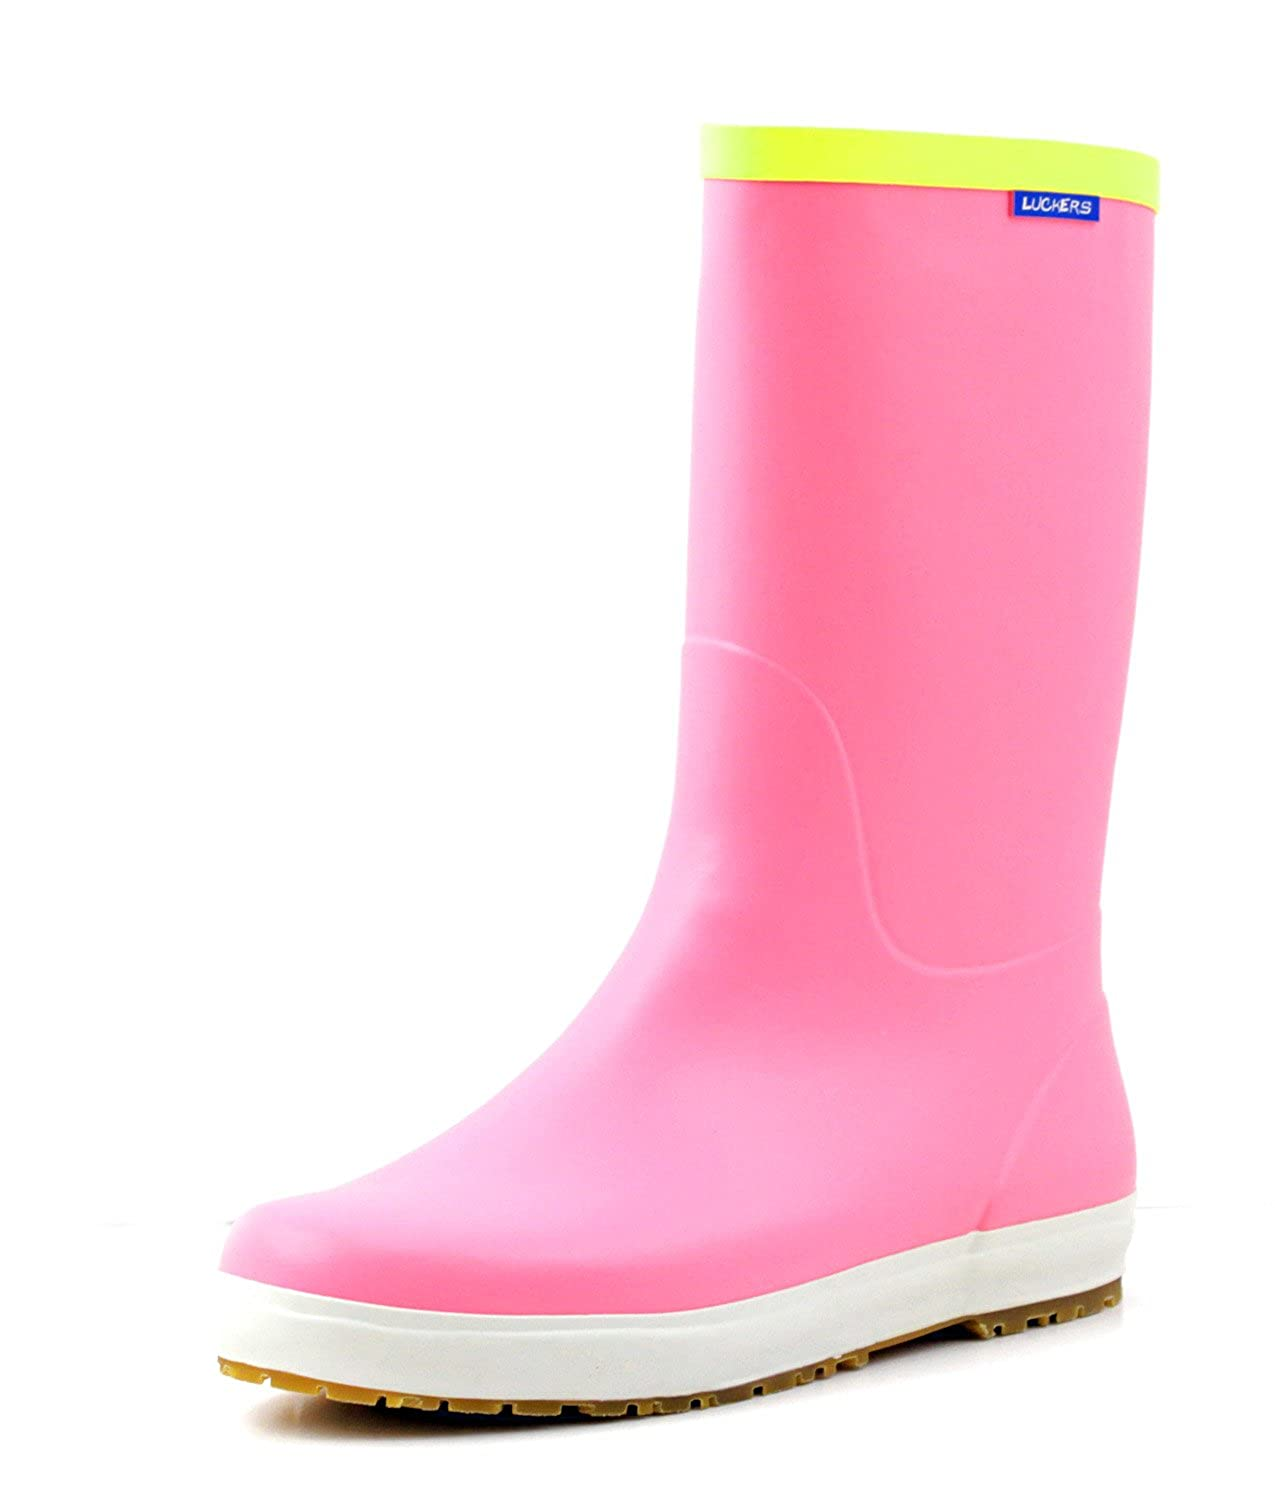 Luckers Women's Pink Foldable Wellies Rain Boots